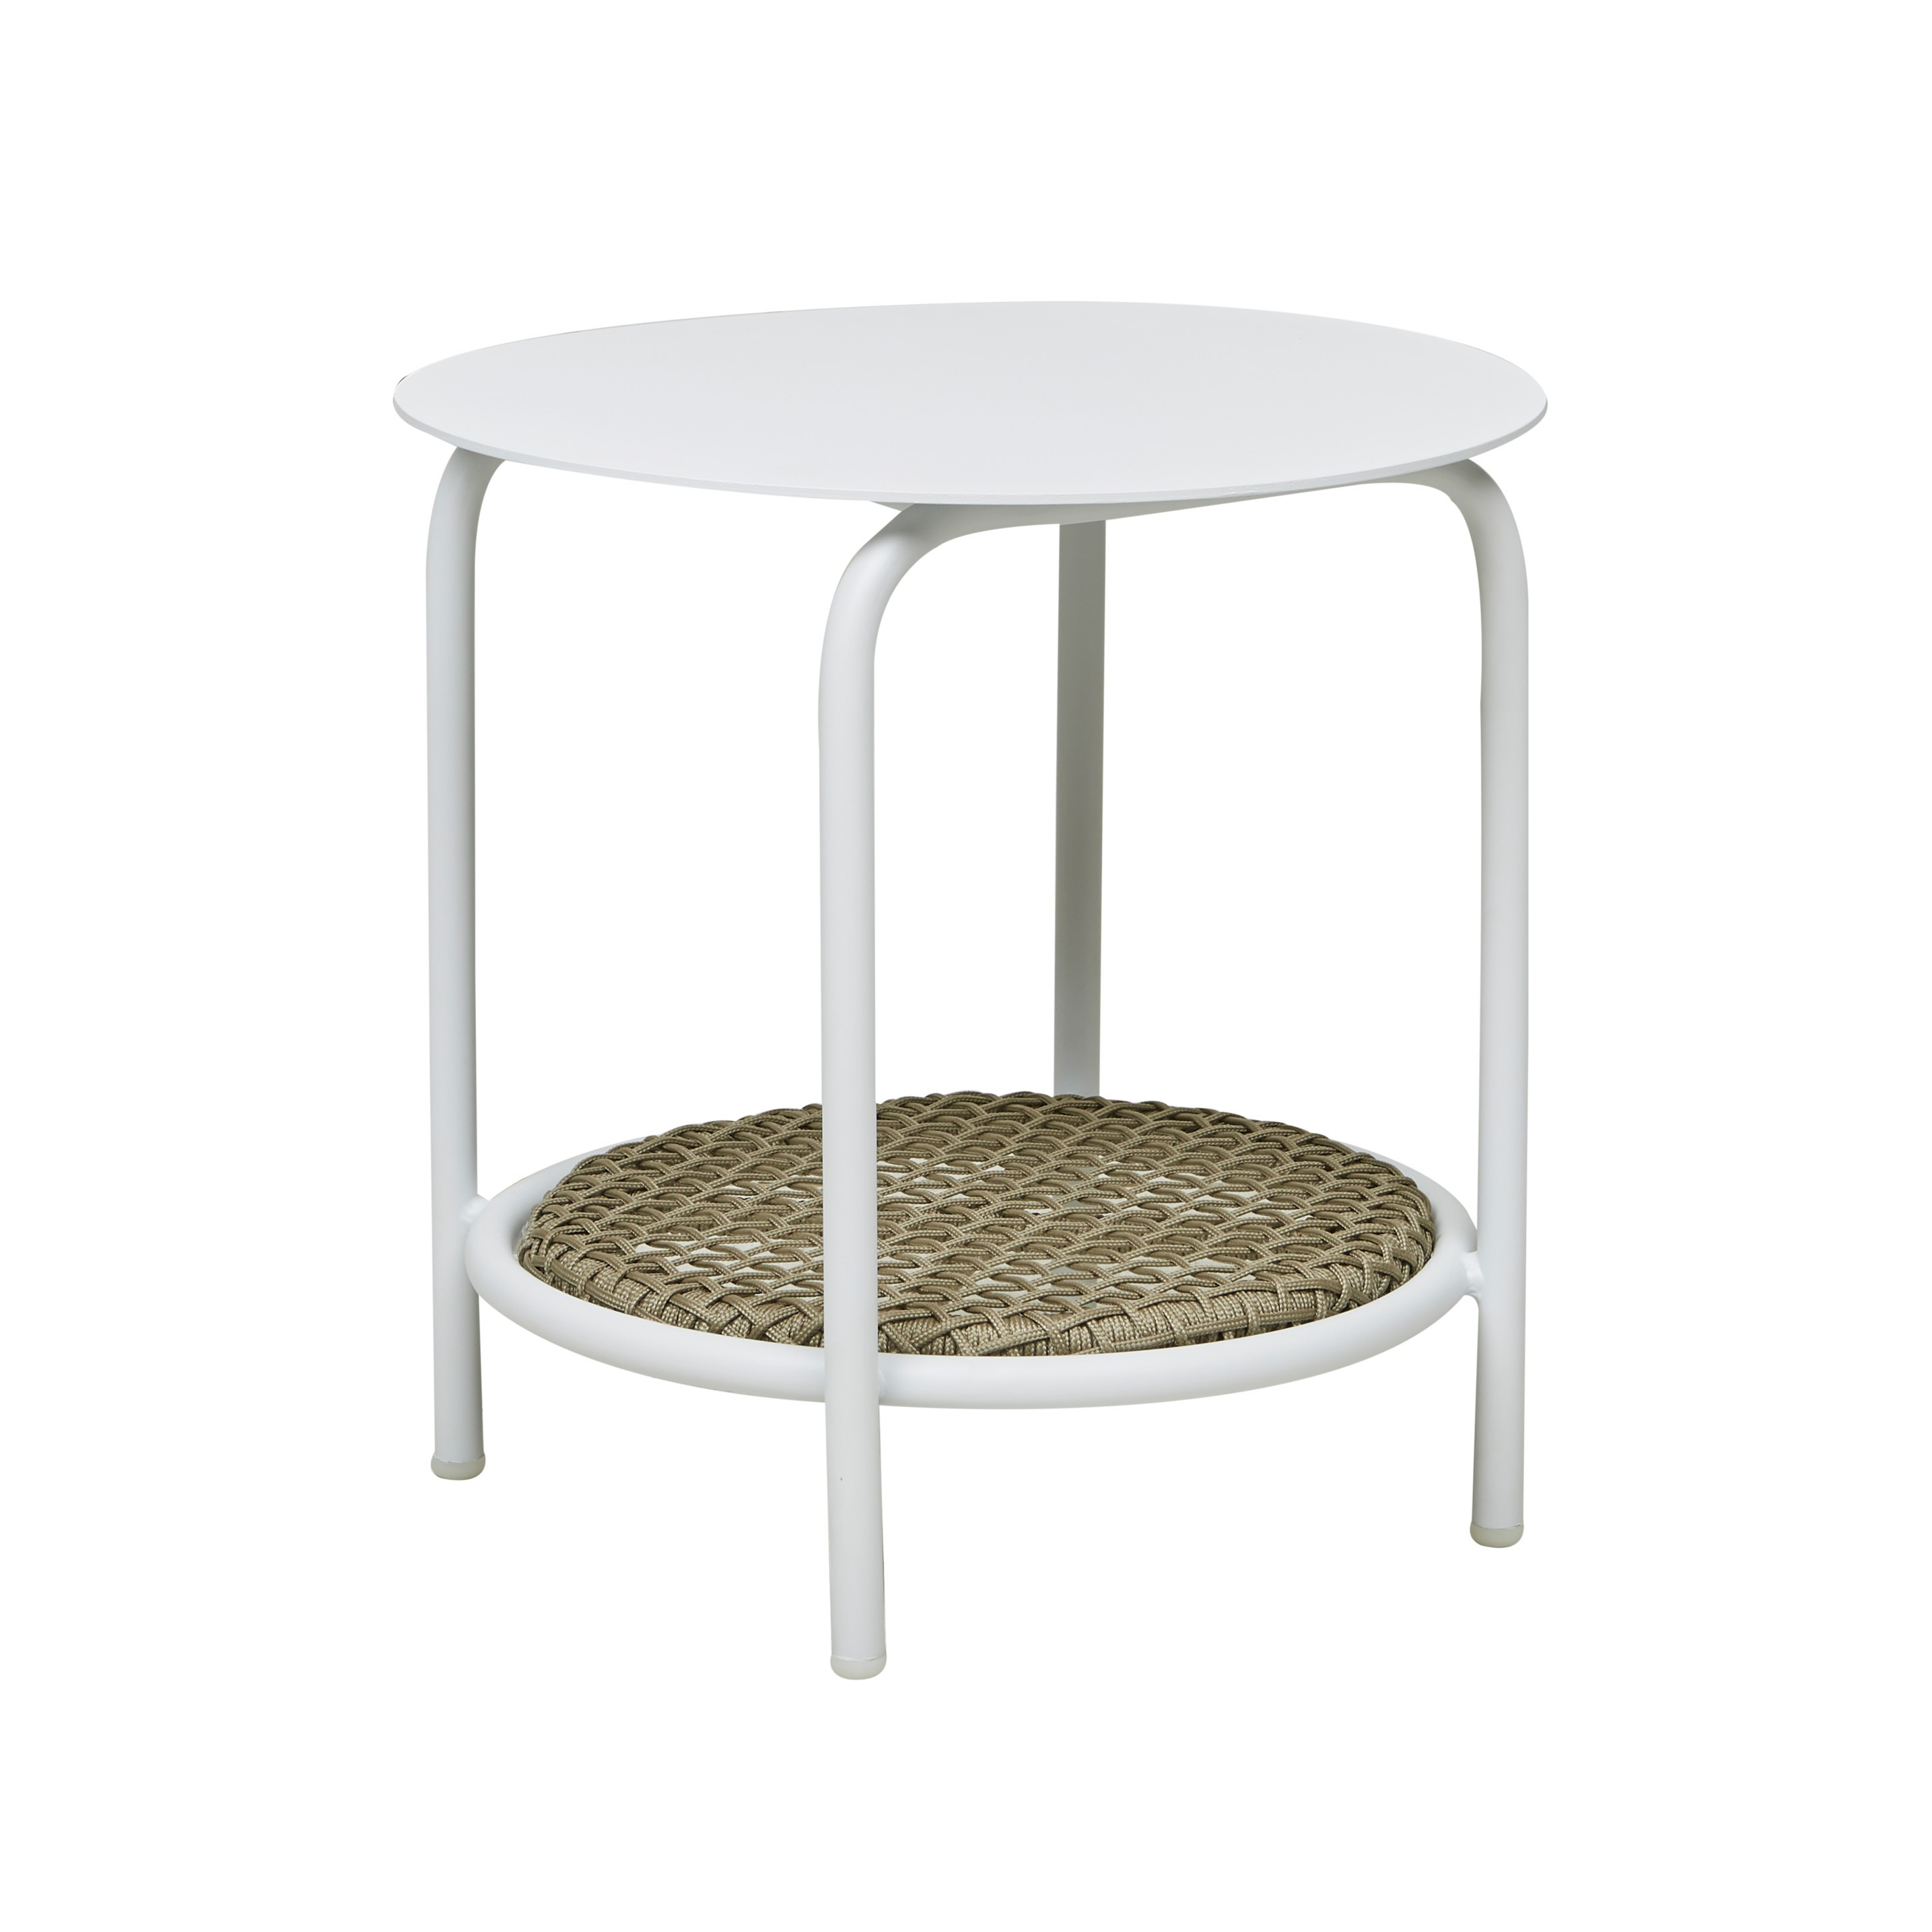 Furniture Hero-Images Coffee-Side-Tables-and-Trolleys aperto-rounded-side-table-01